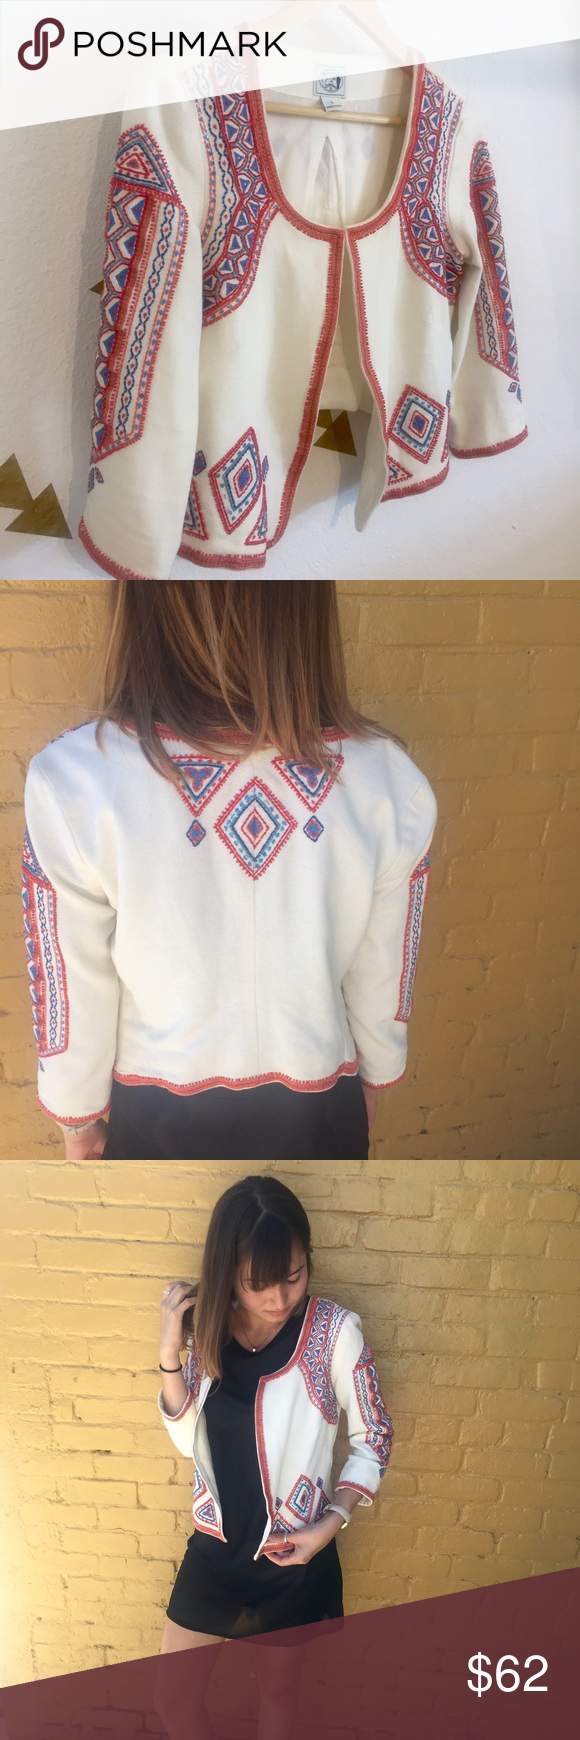 Irving & Fine Boho Jacket A gorgeous Irving & Fine jacket with so much embroidery and bead work, made in India, sold by Lucky Brand. Would work really well with a bohemian look, also in perfect condition. Lucky Brand Jackets & Coats